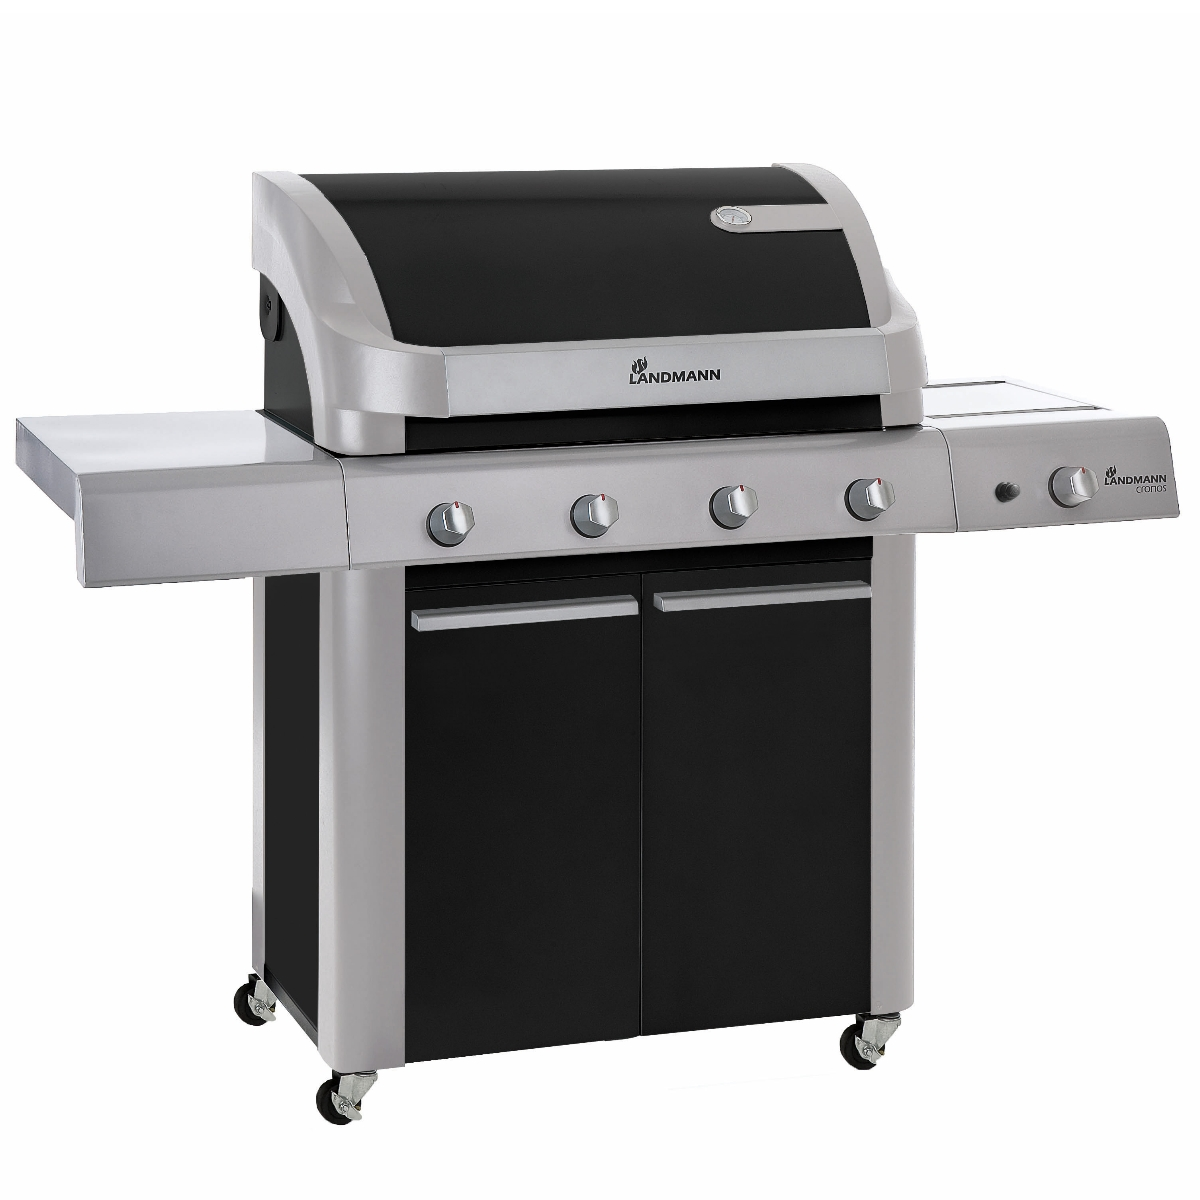 landmann 12873 cronos gas barbecue 4 burner black bbq cooking grill new ebay. Black Bedroom Furniture Sets. Home Design Ideas